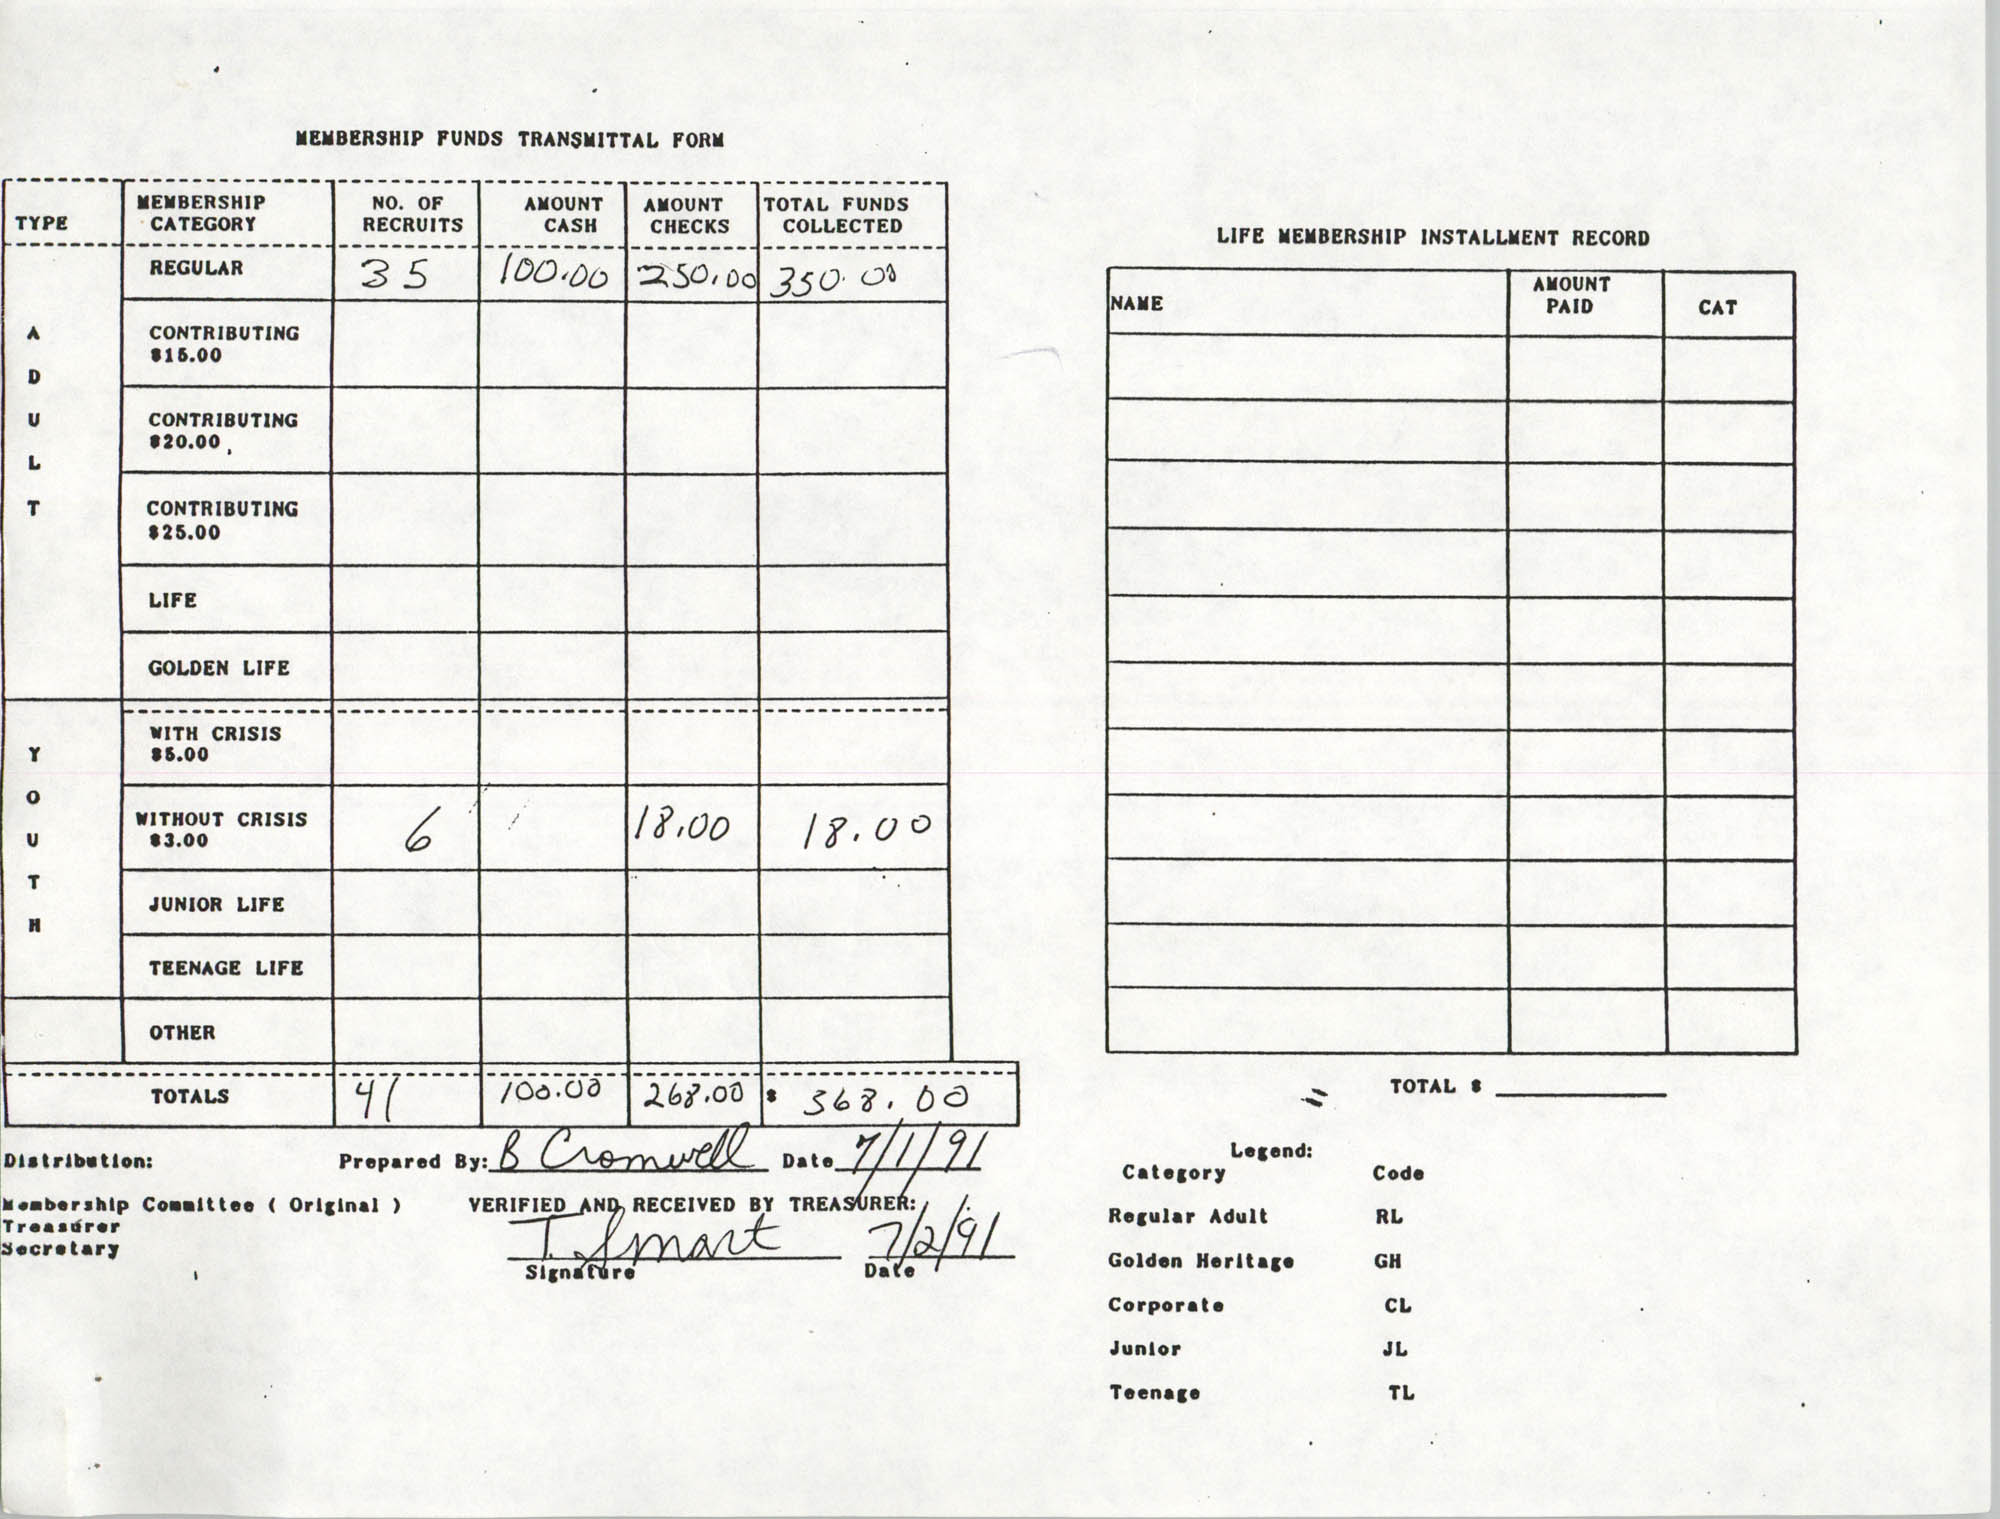 Charleston Branch of the NAACP Funds Transmittal Forms, July 1991, Page 1